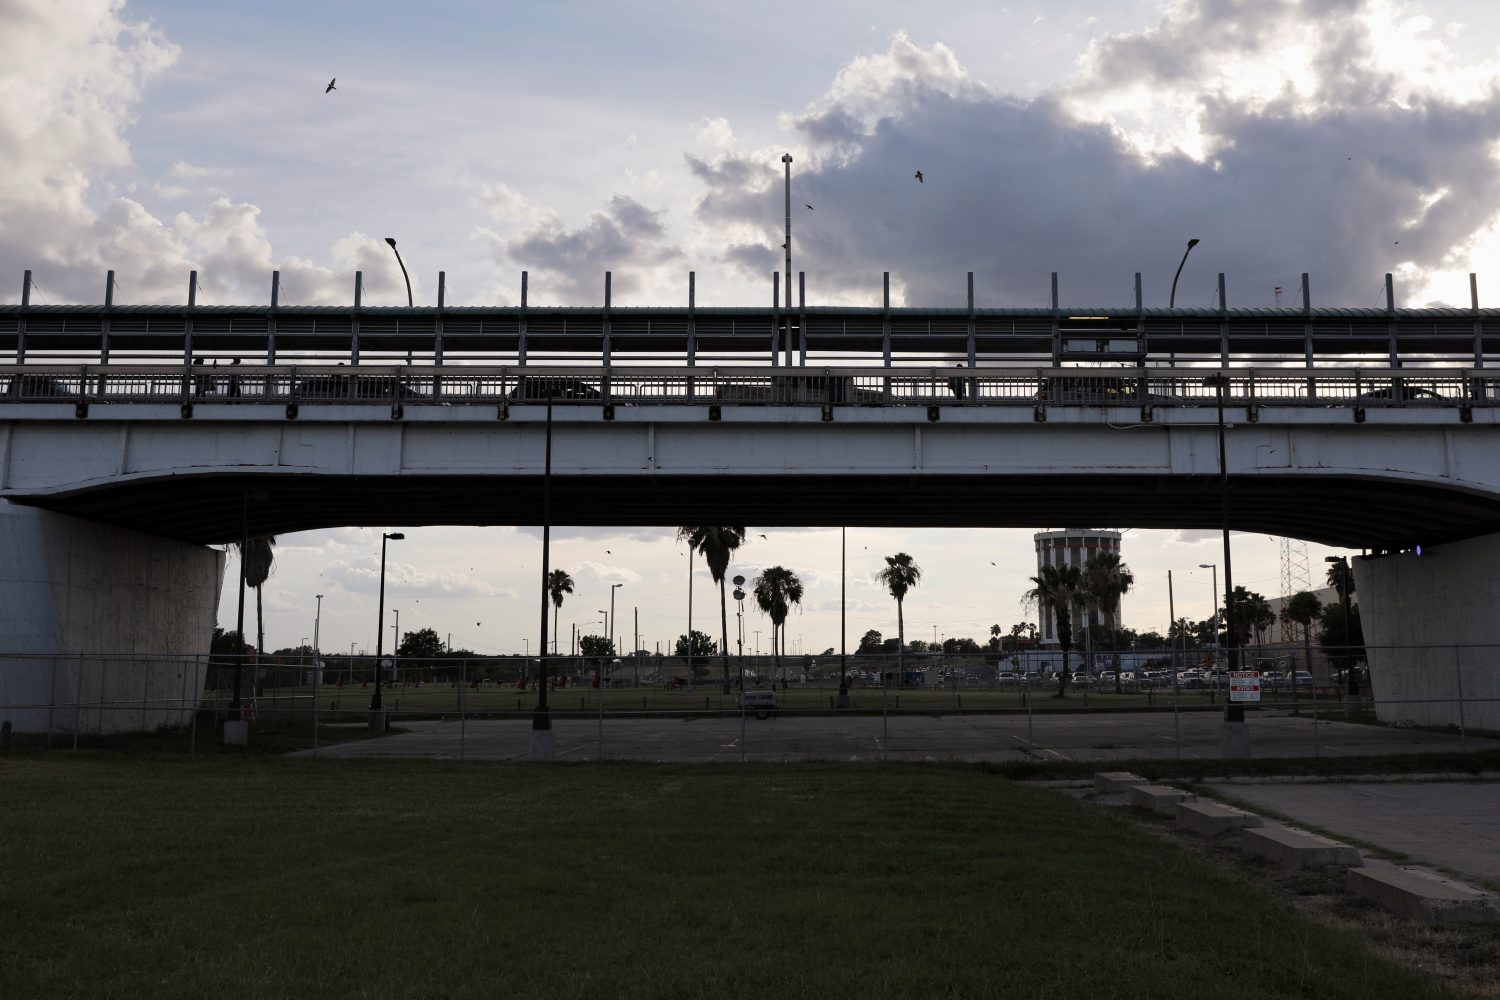 Vehicles and people cross the border bridge into the U.S., as seen from Laredo, Texas June 2, 2019. REUTERS/Carlos Jasso